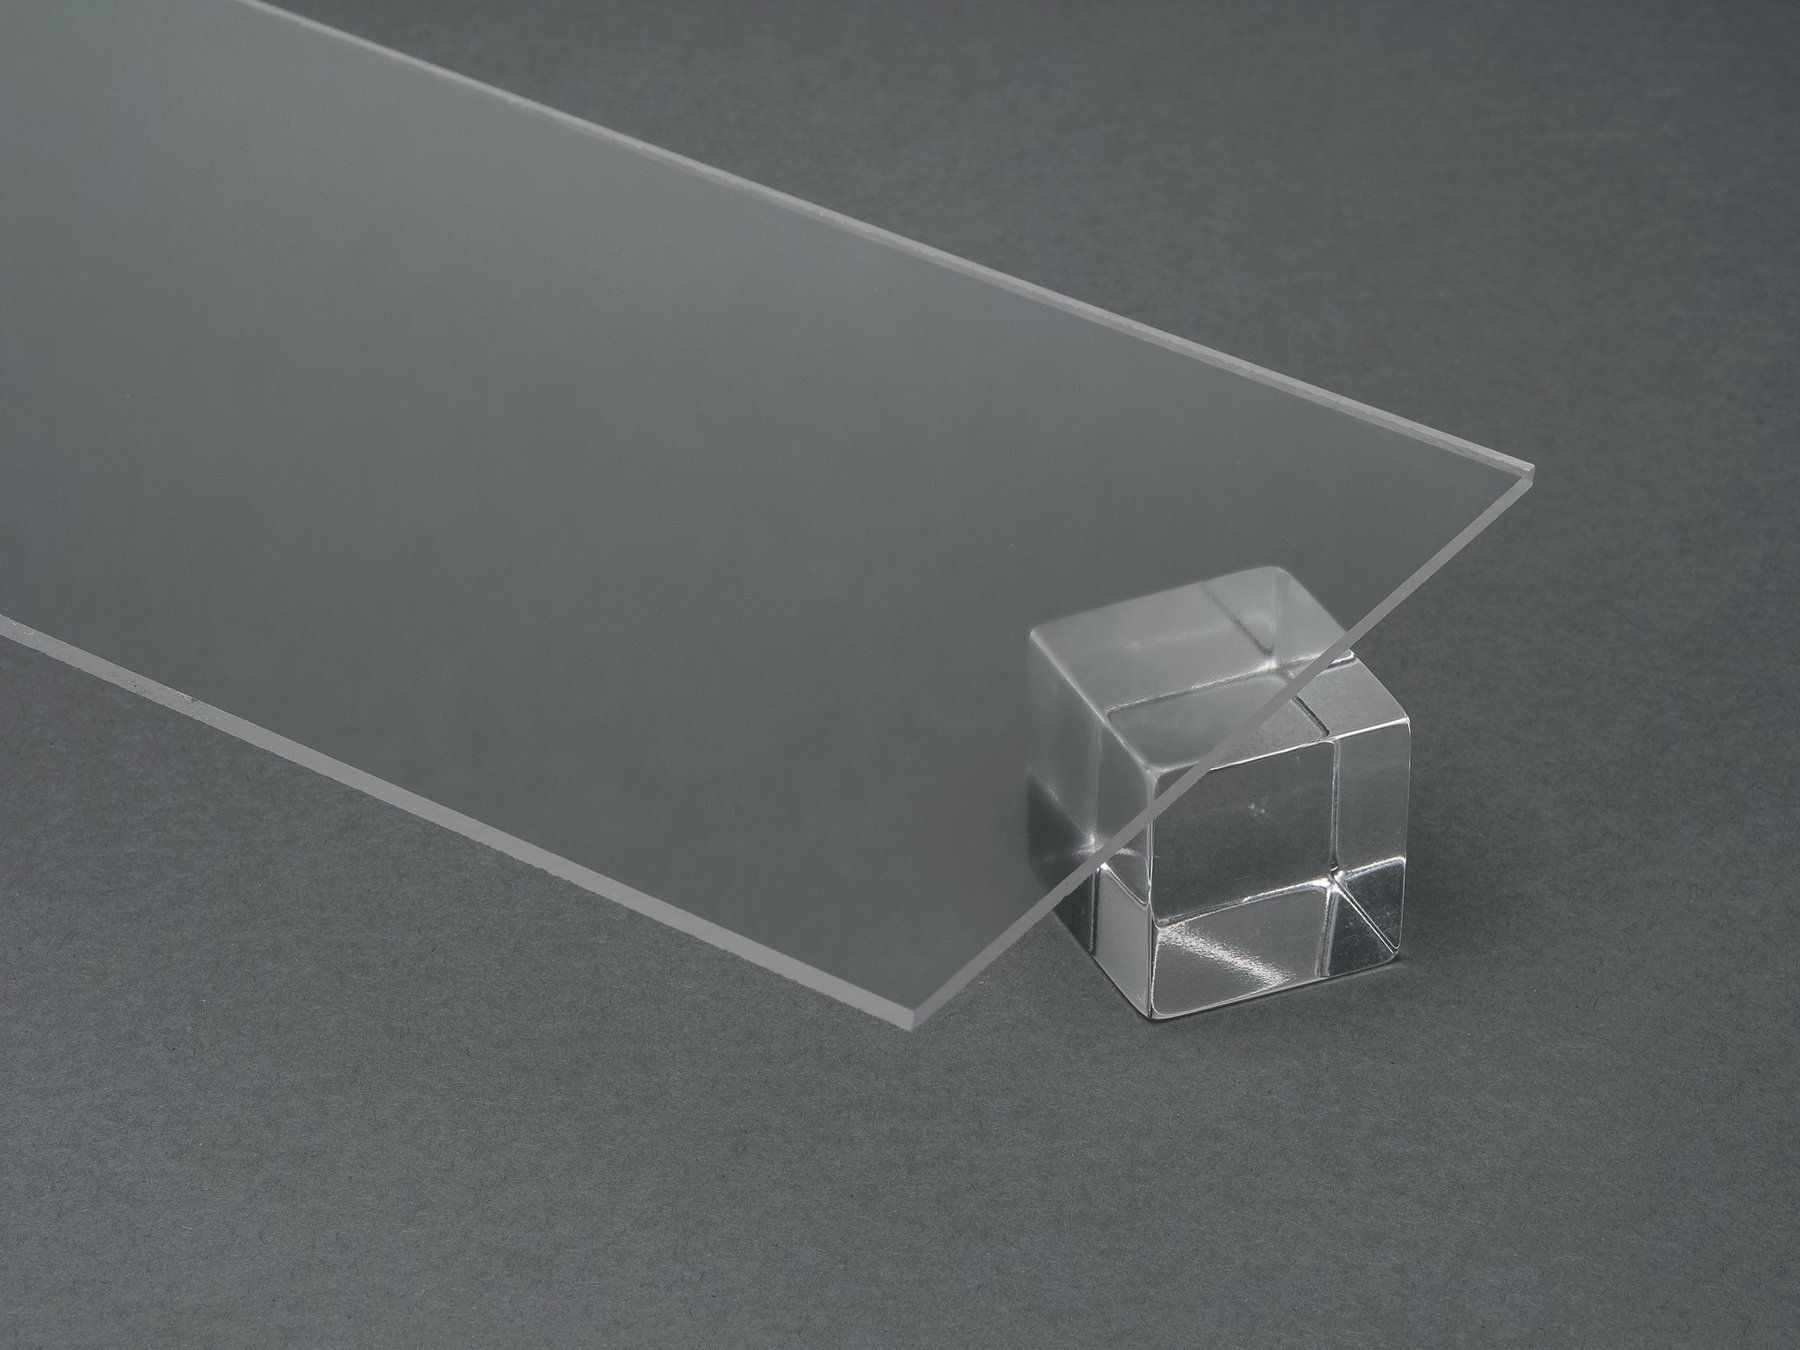 Acrylic Sheet 1 8 Clear Non Glare P99 Plexiglas Plastic Etsy In 2020 Acrylic Sheets Transparent Surfaces Resin Diy